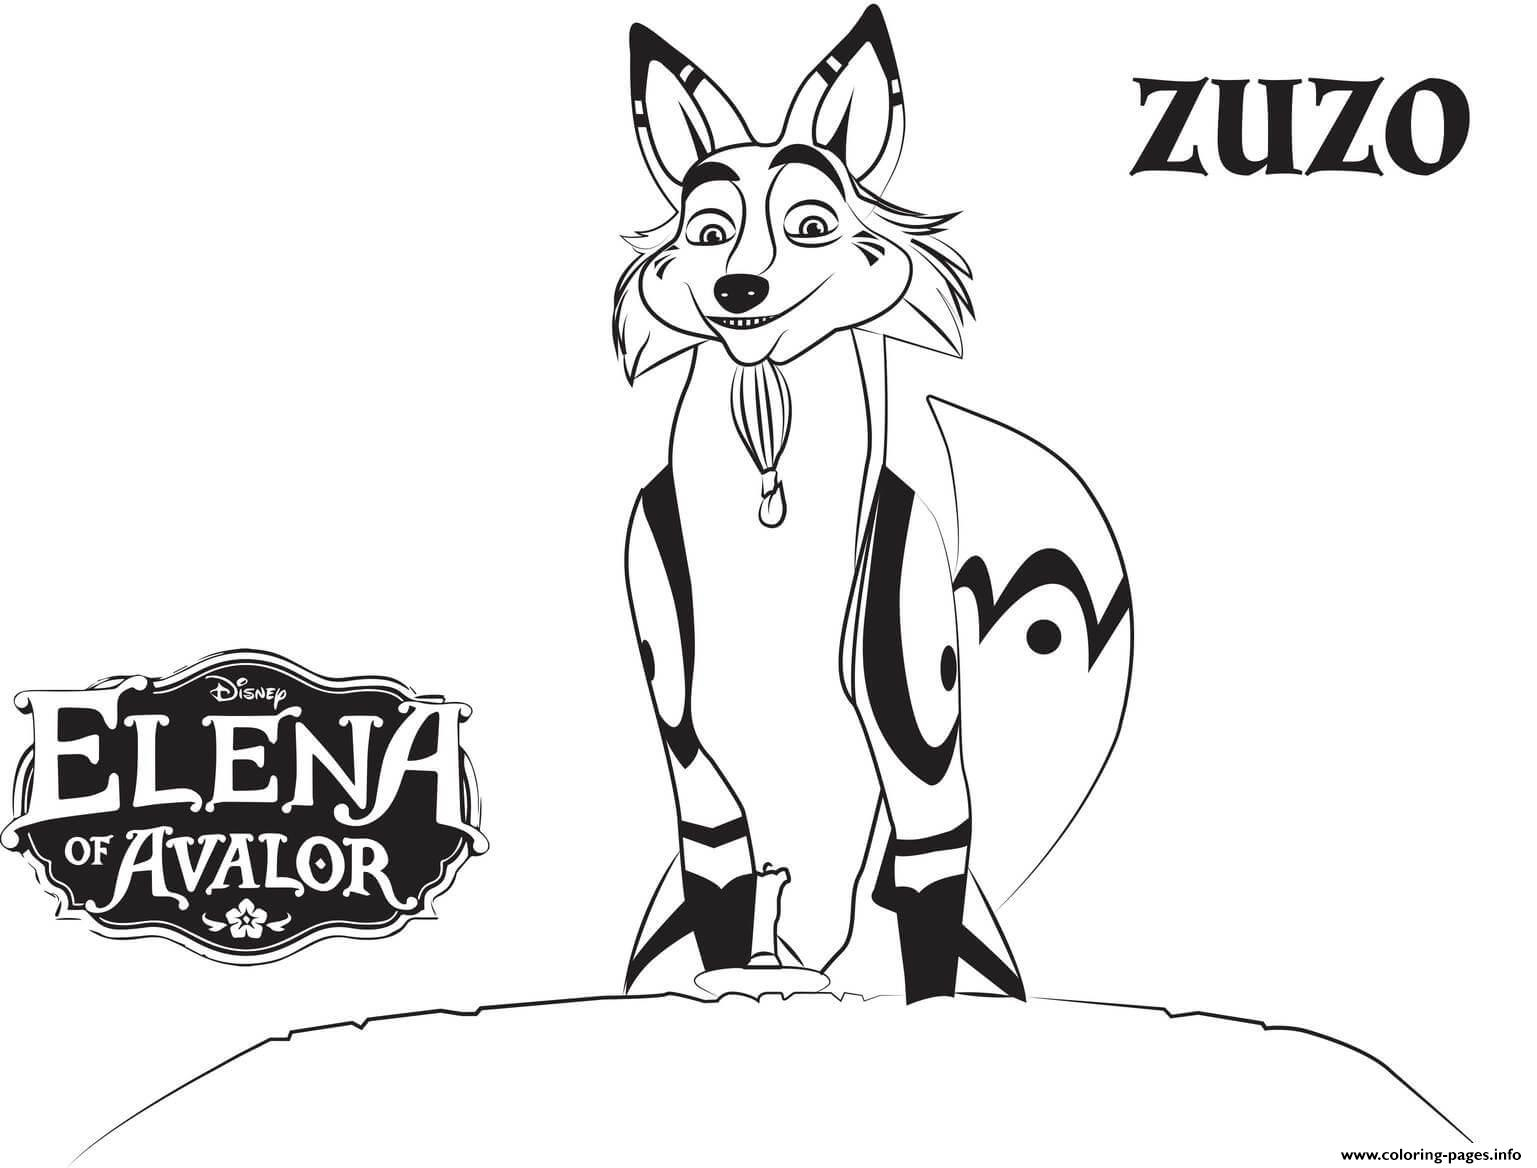 Elena Of Avalor Zuzo Disney coloring pages